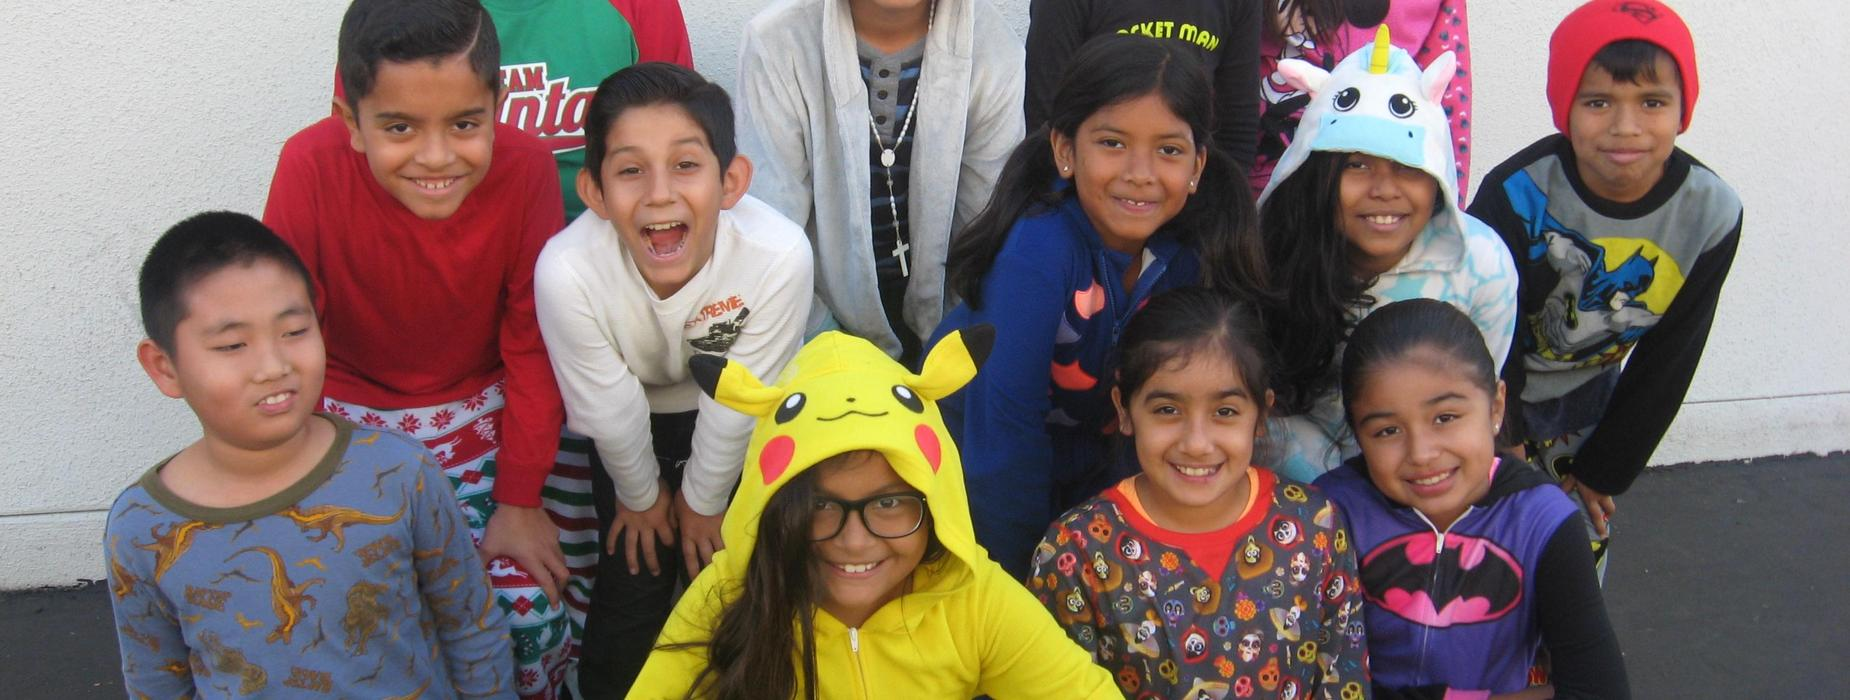 picture of students dressed in pajamas for spirit day